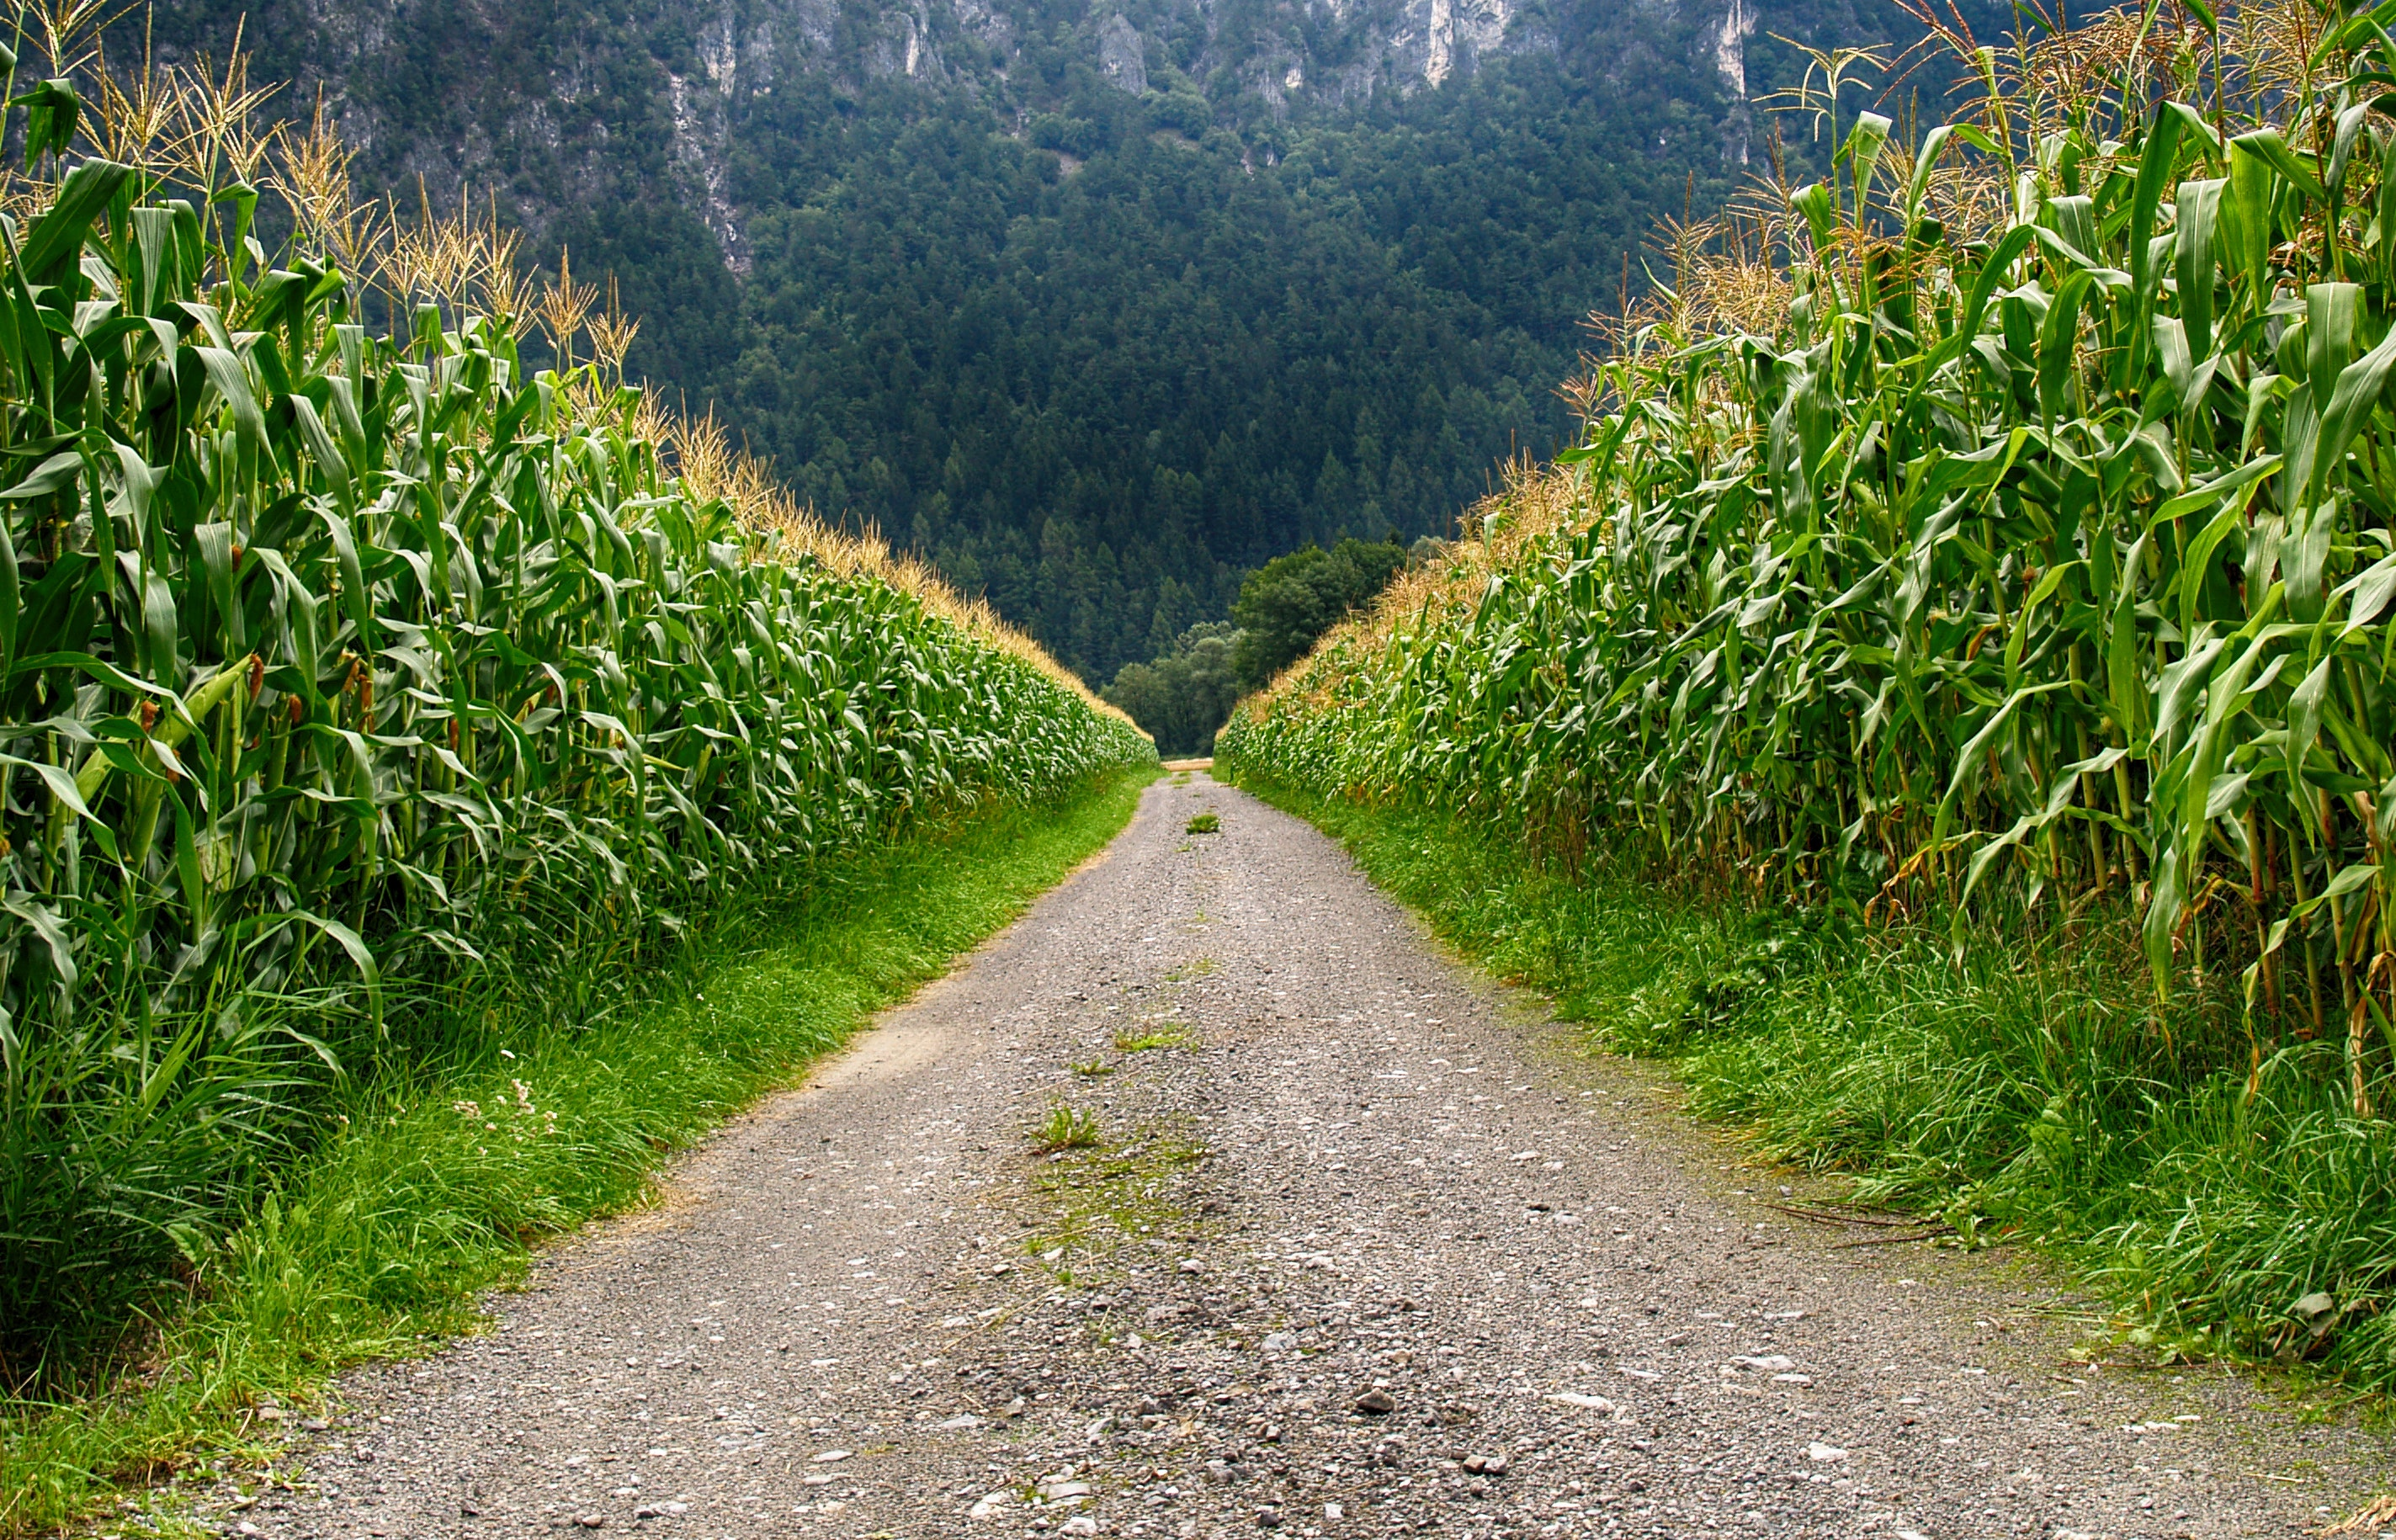 Pathway in Middle of Corn Field, Grass, Trees, Summer, Scenic, HQ Photo